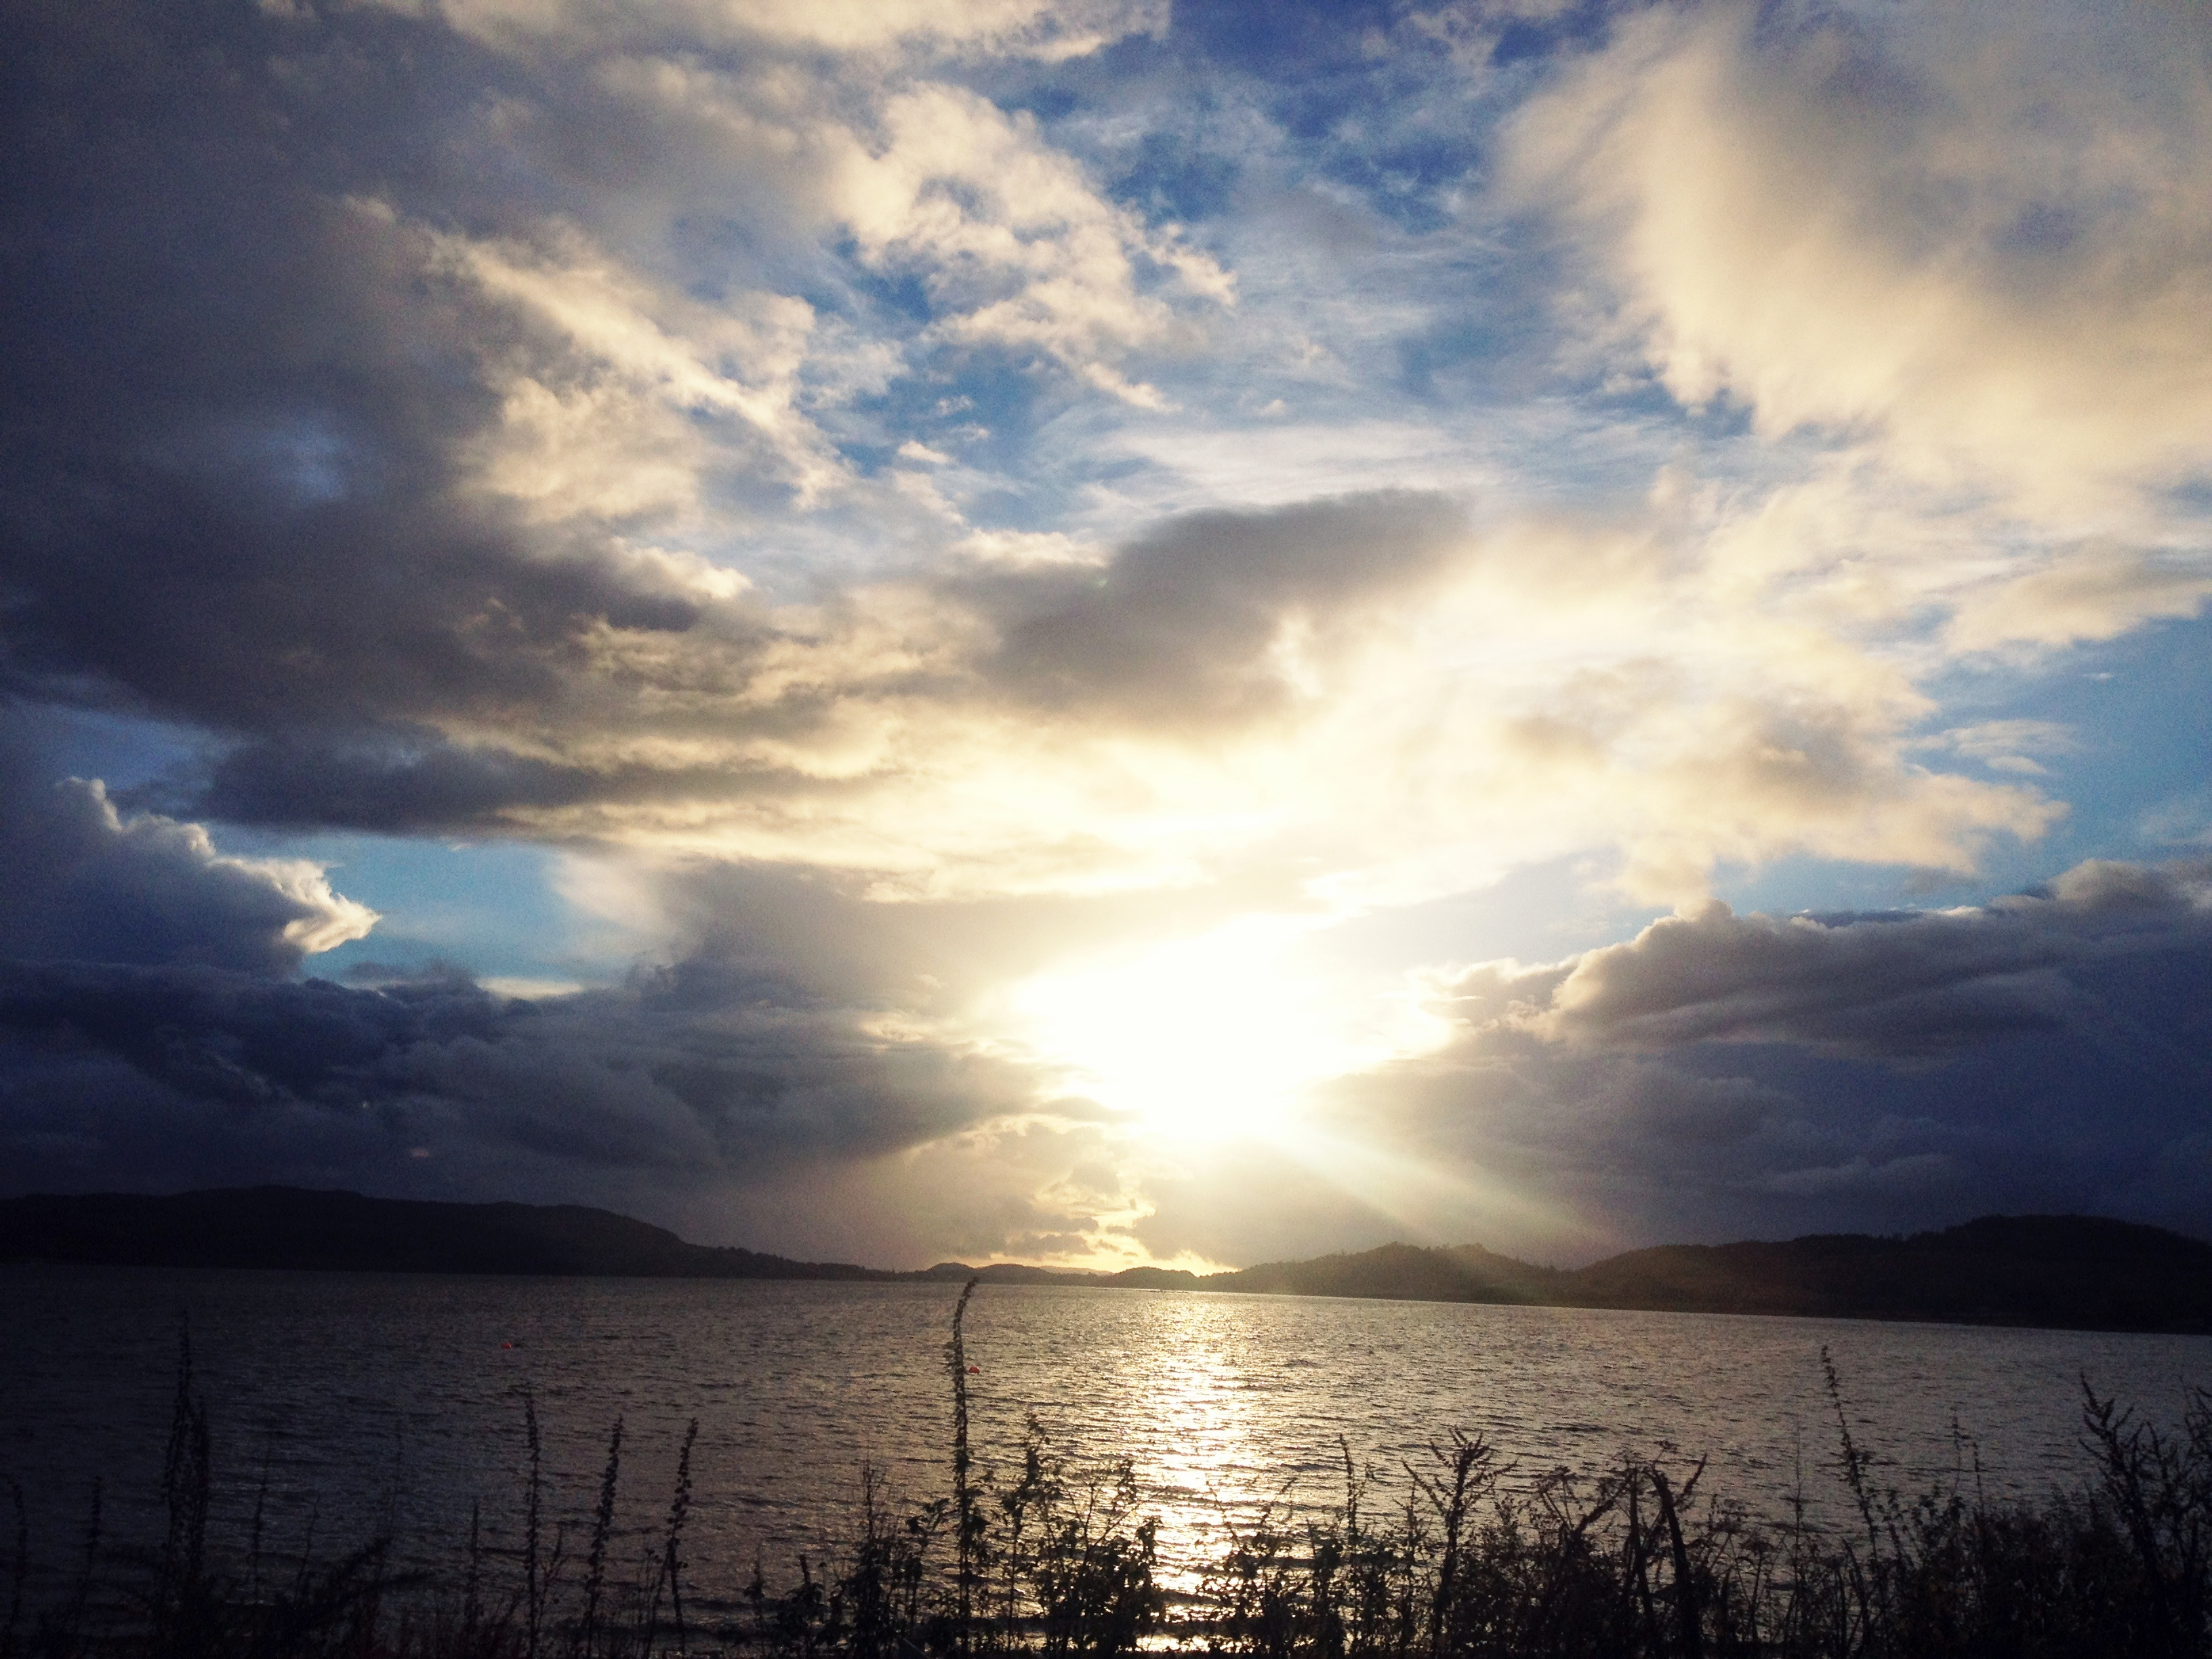 Sunset over Loch Lomond, Scotland